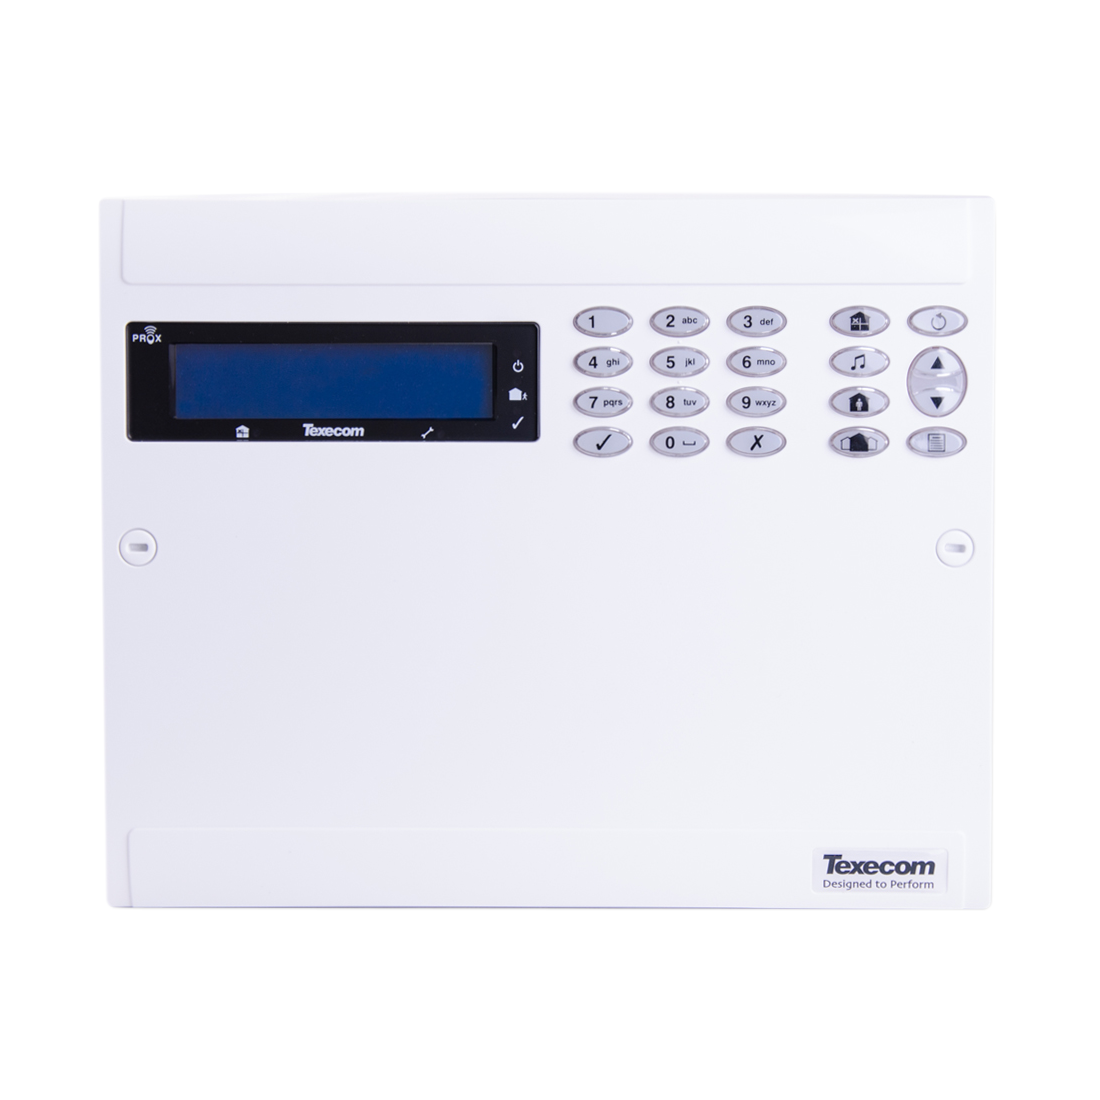 Texecom Ricochet Wireless Alarms